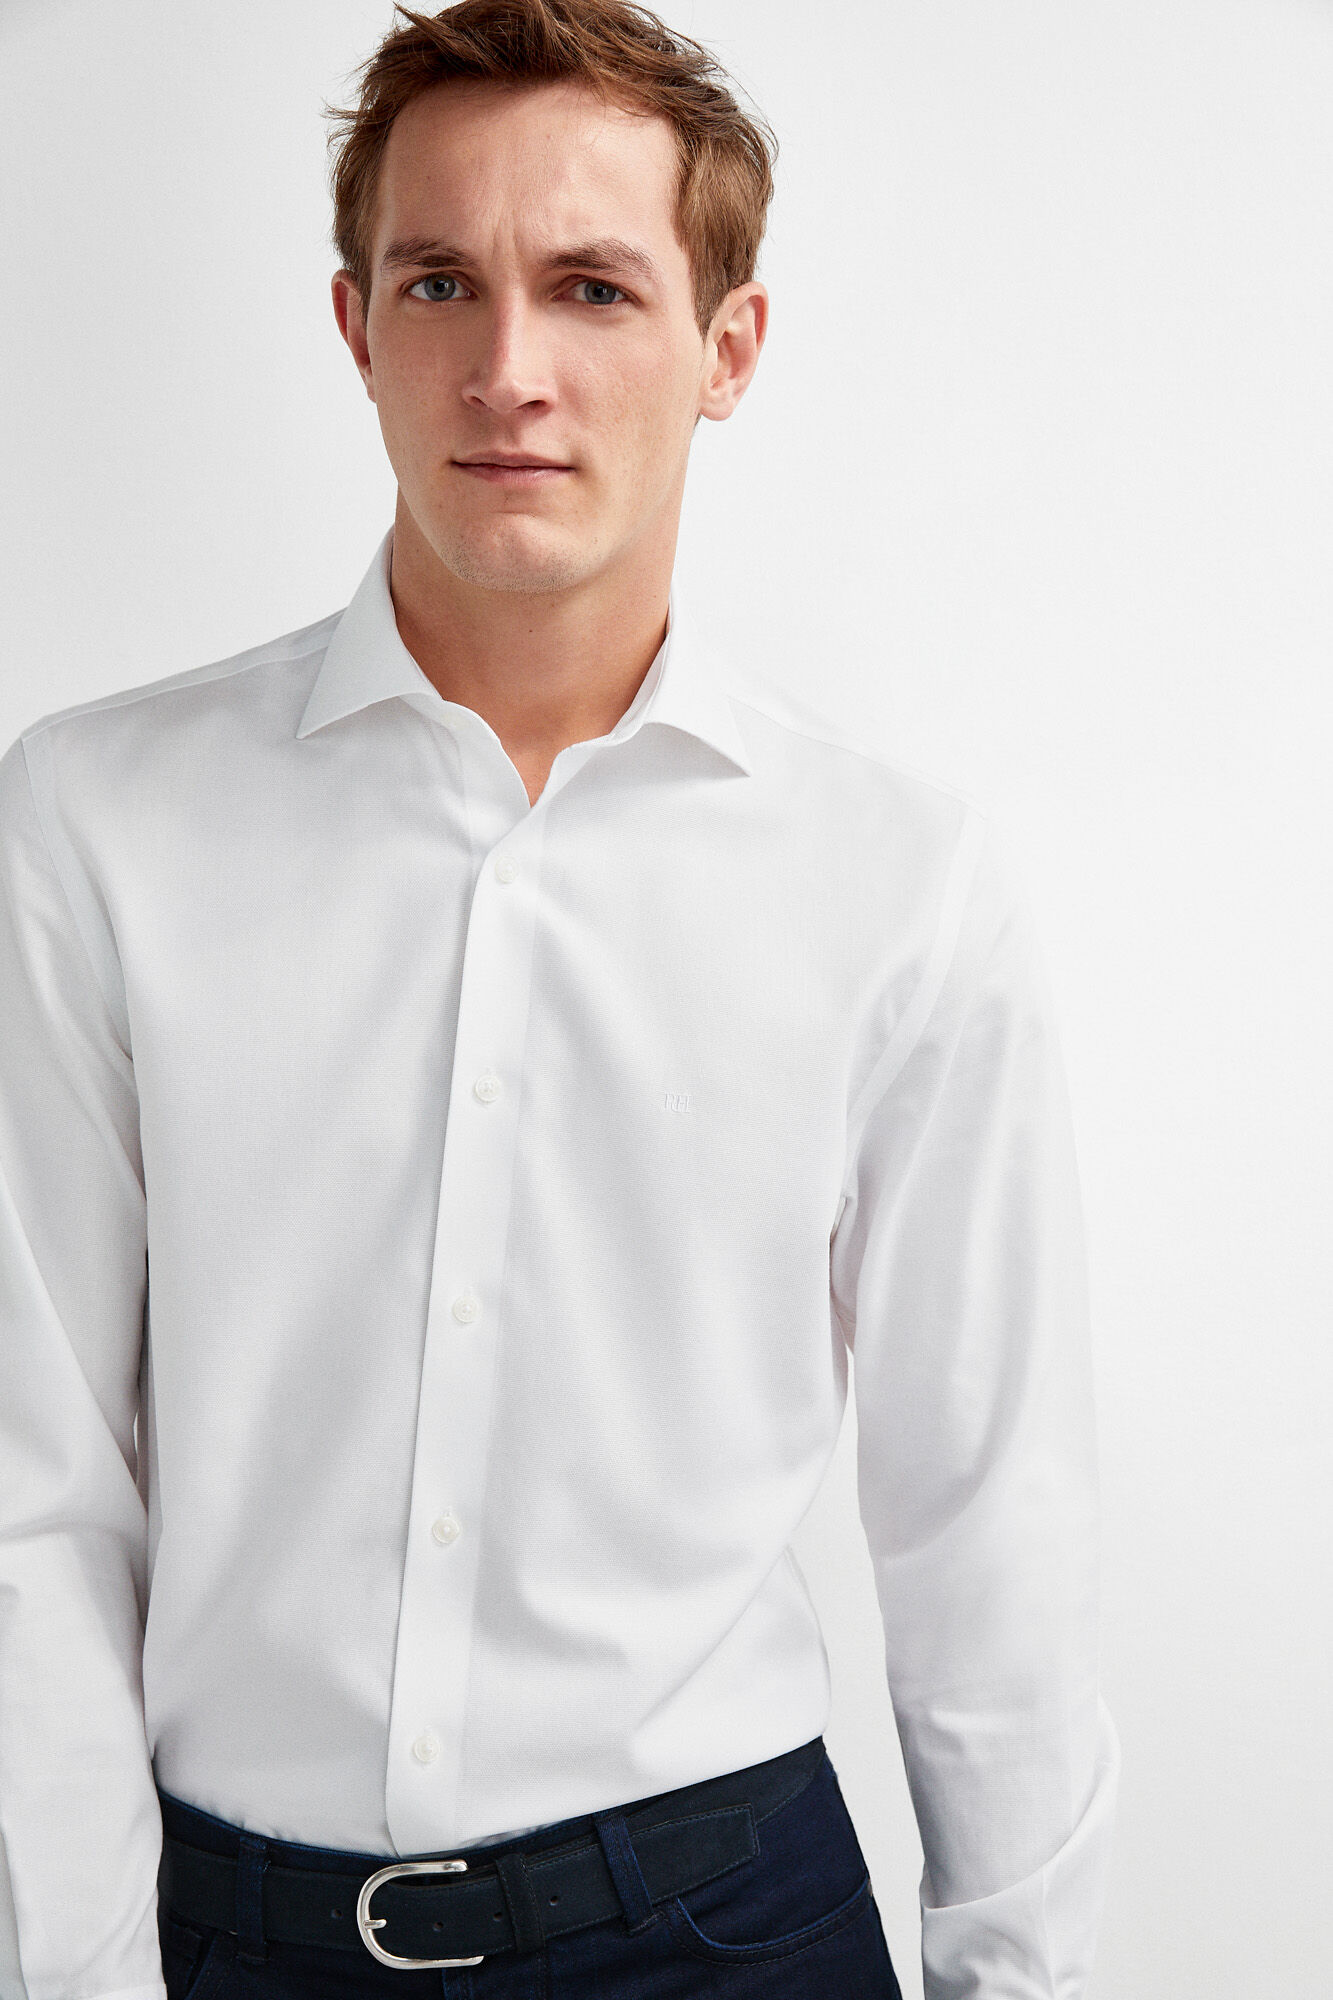 59f9e4f9613d88 Ladies Plain White Dress Shirt – EDGE Engineering and Consulting Limited